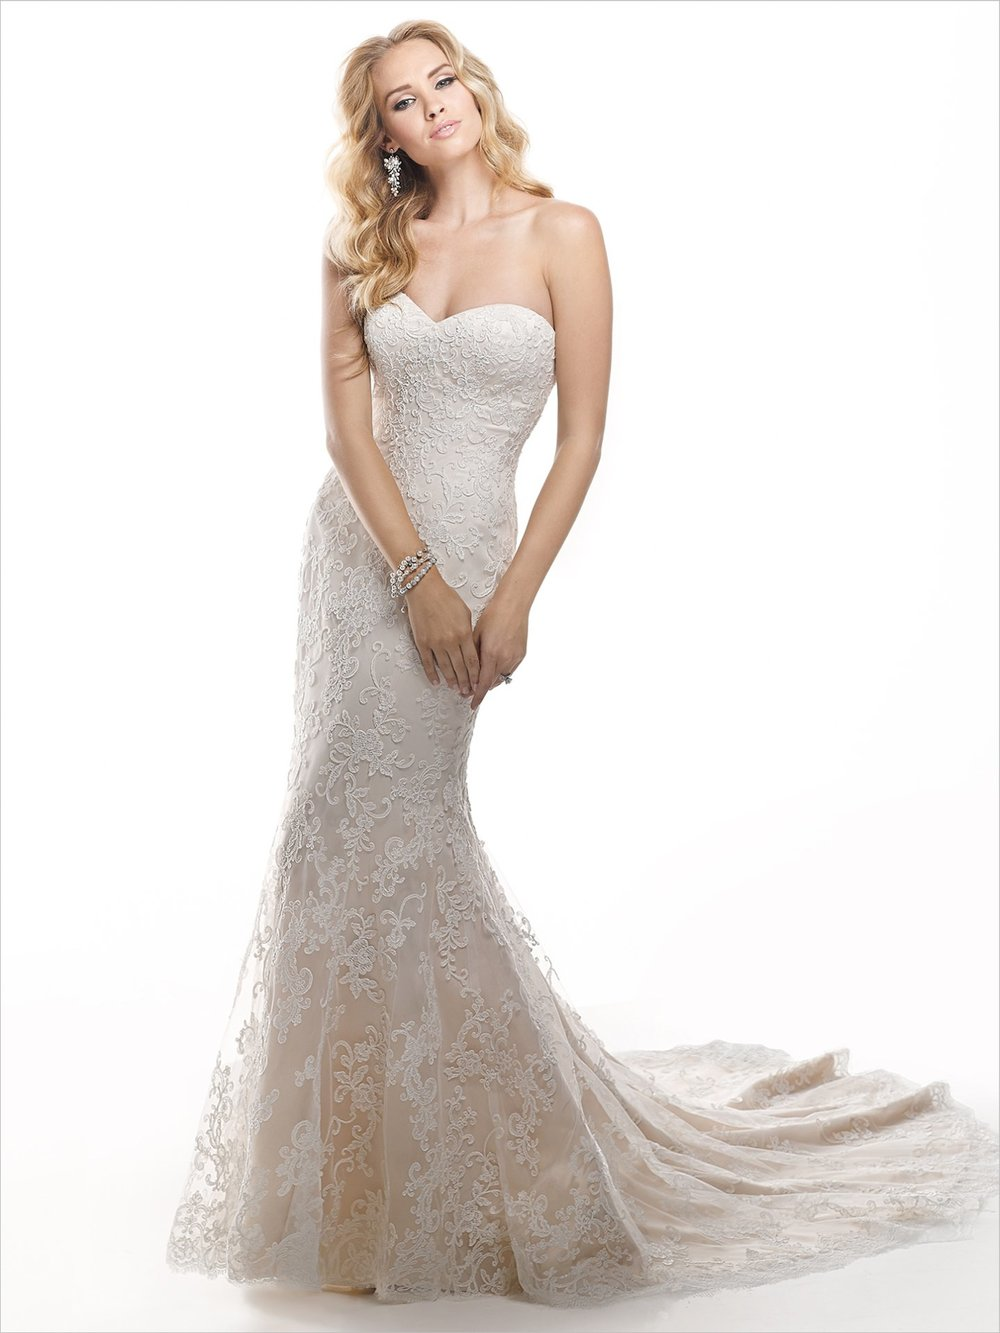 A bridal closet the bridal outlet store of dallas izmirmasajfo